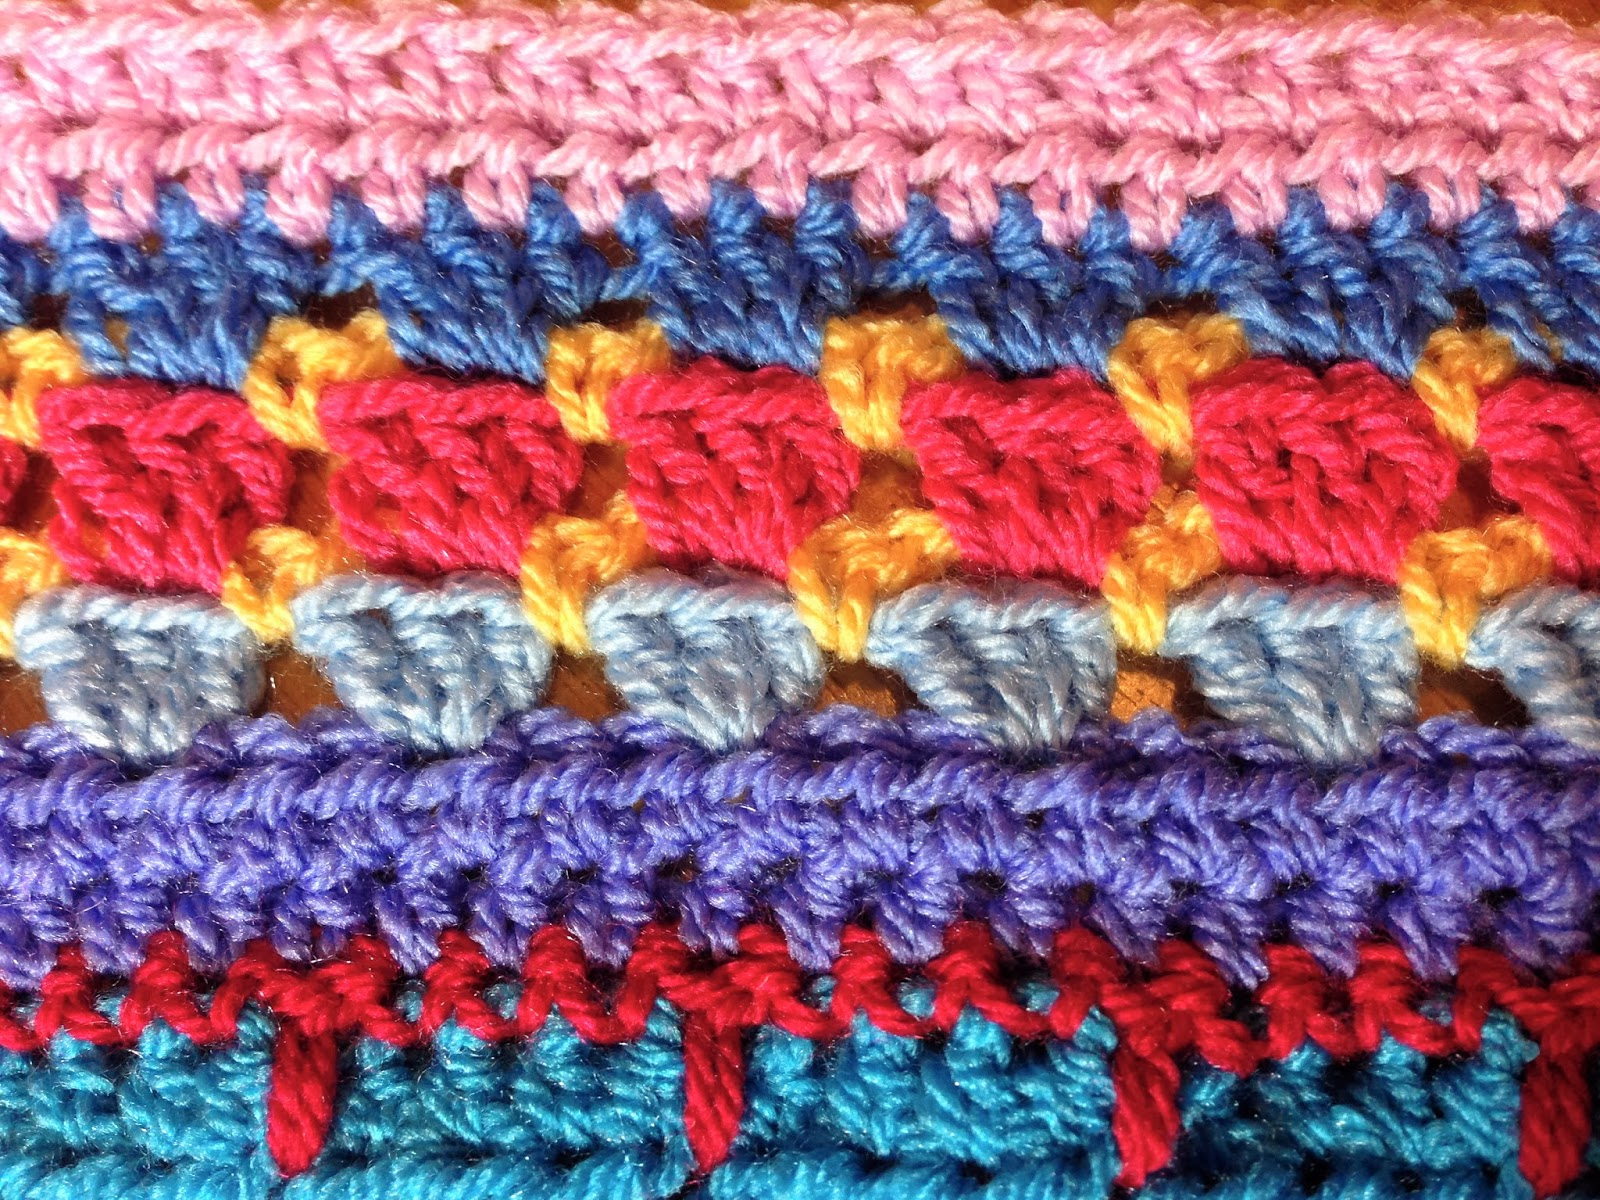 Crochet Stitches Multicolor : The stitches used this week are dc in 3 dc clusters, hdc, and sc.